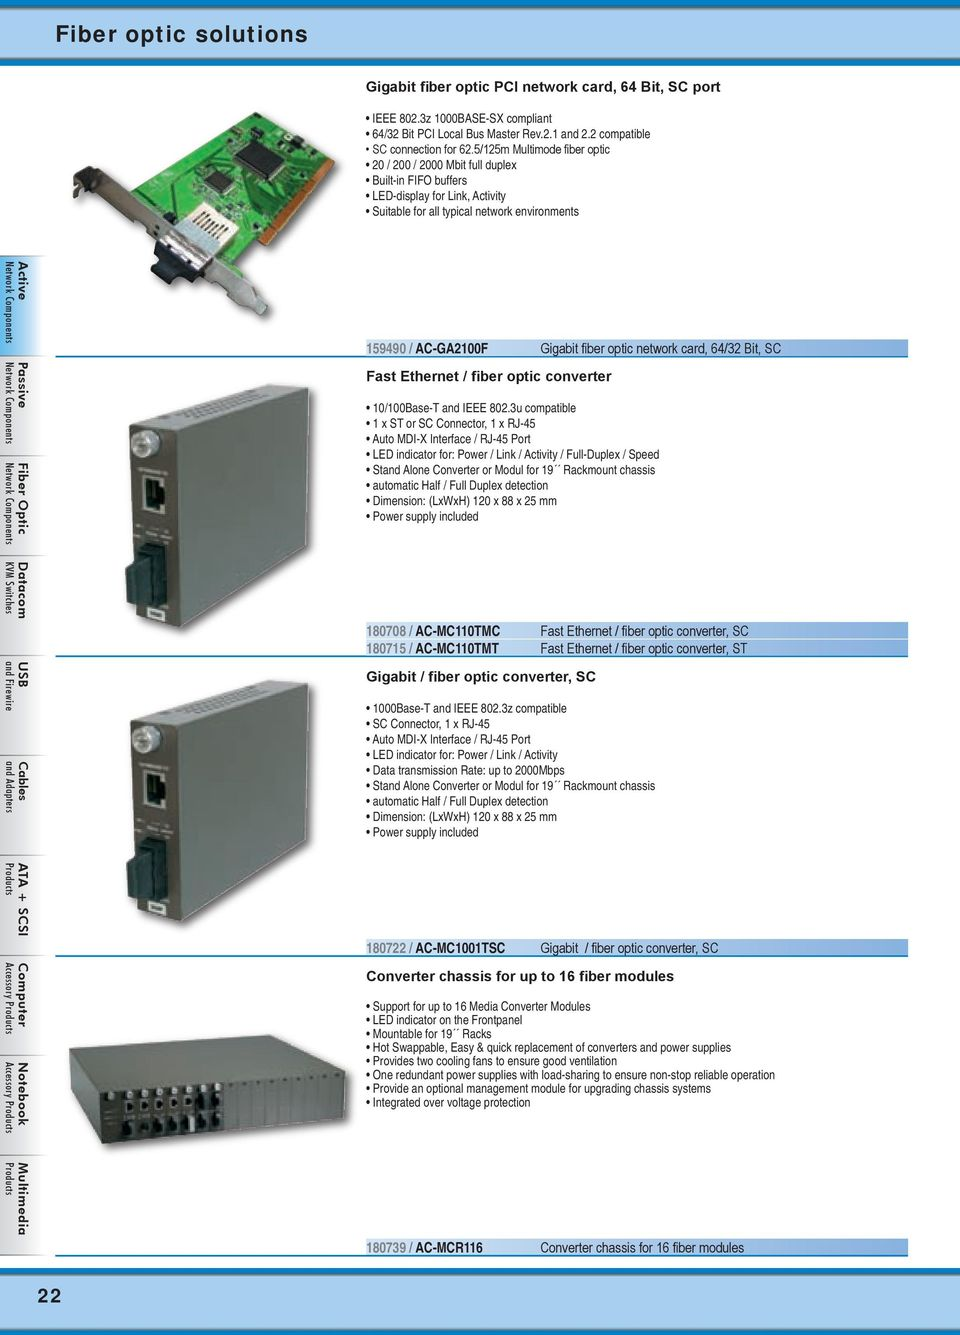 optic network card, 64/32 Bit, SC Fast Ethernet / fiber optic converter 10/100Base-T and IEEE 802.